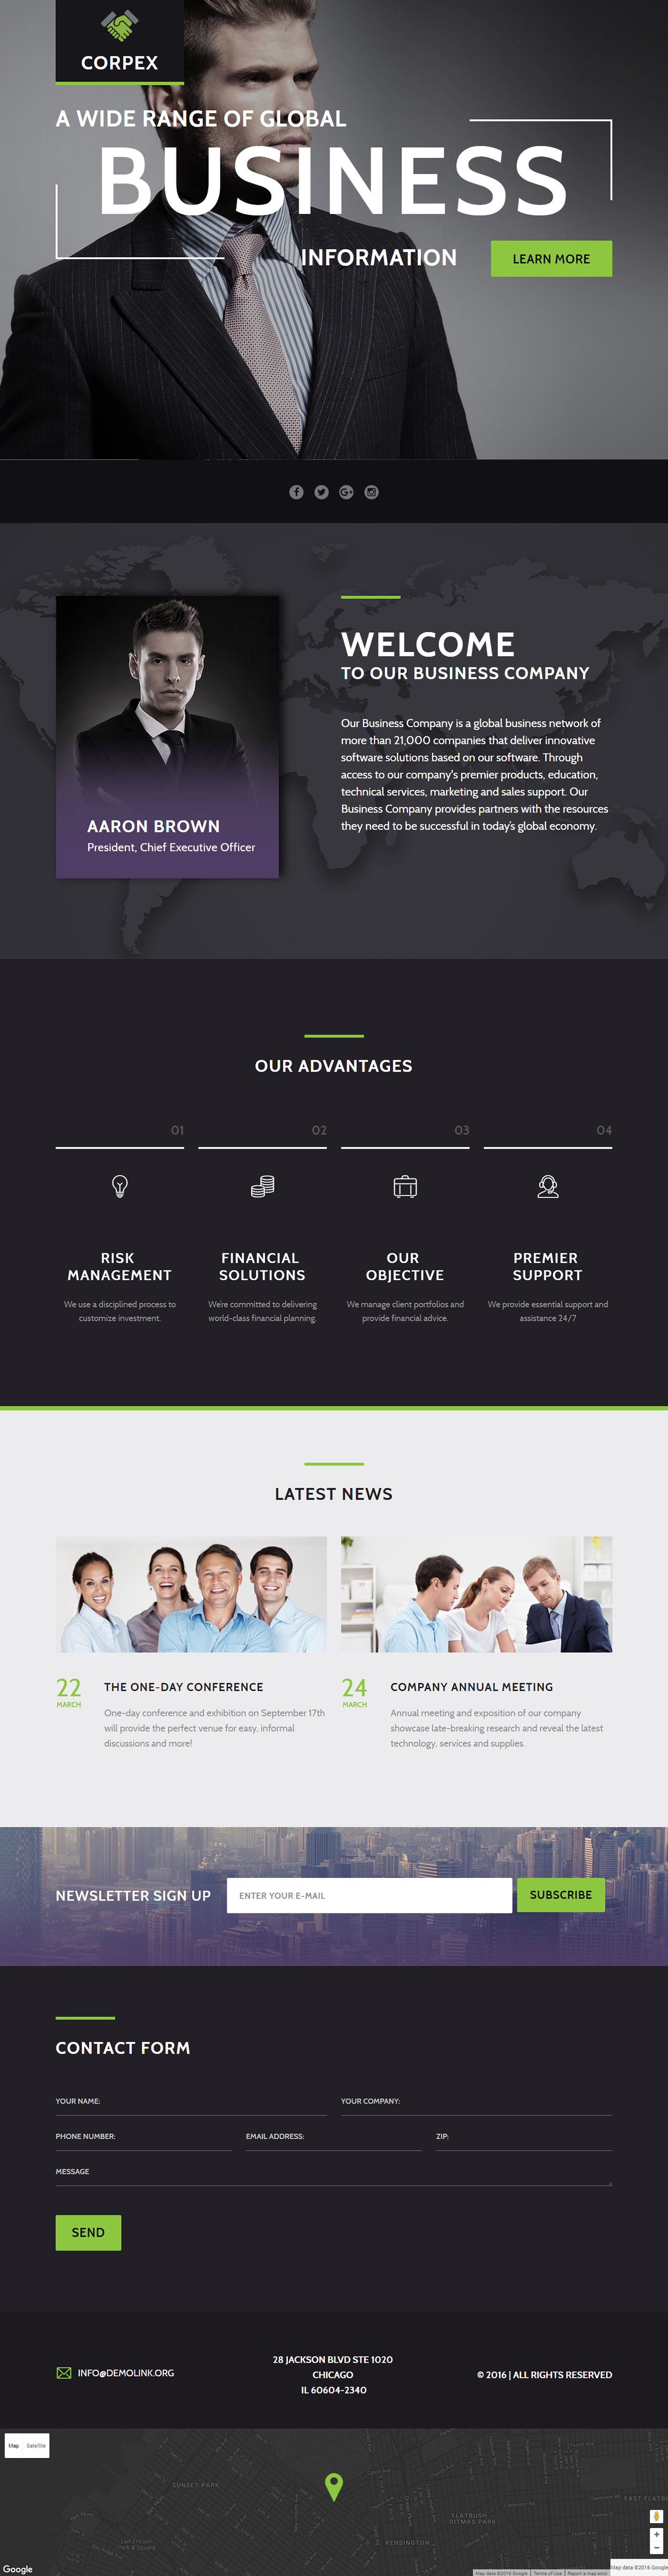 Business Information Landing Page Template on Behance | Landing Page ...